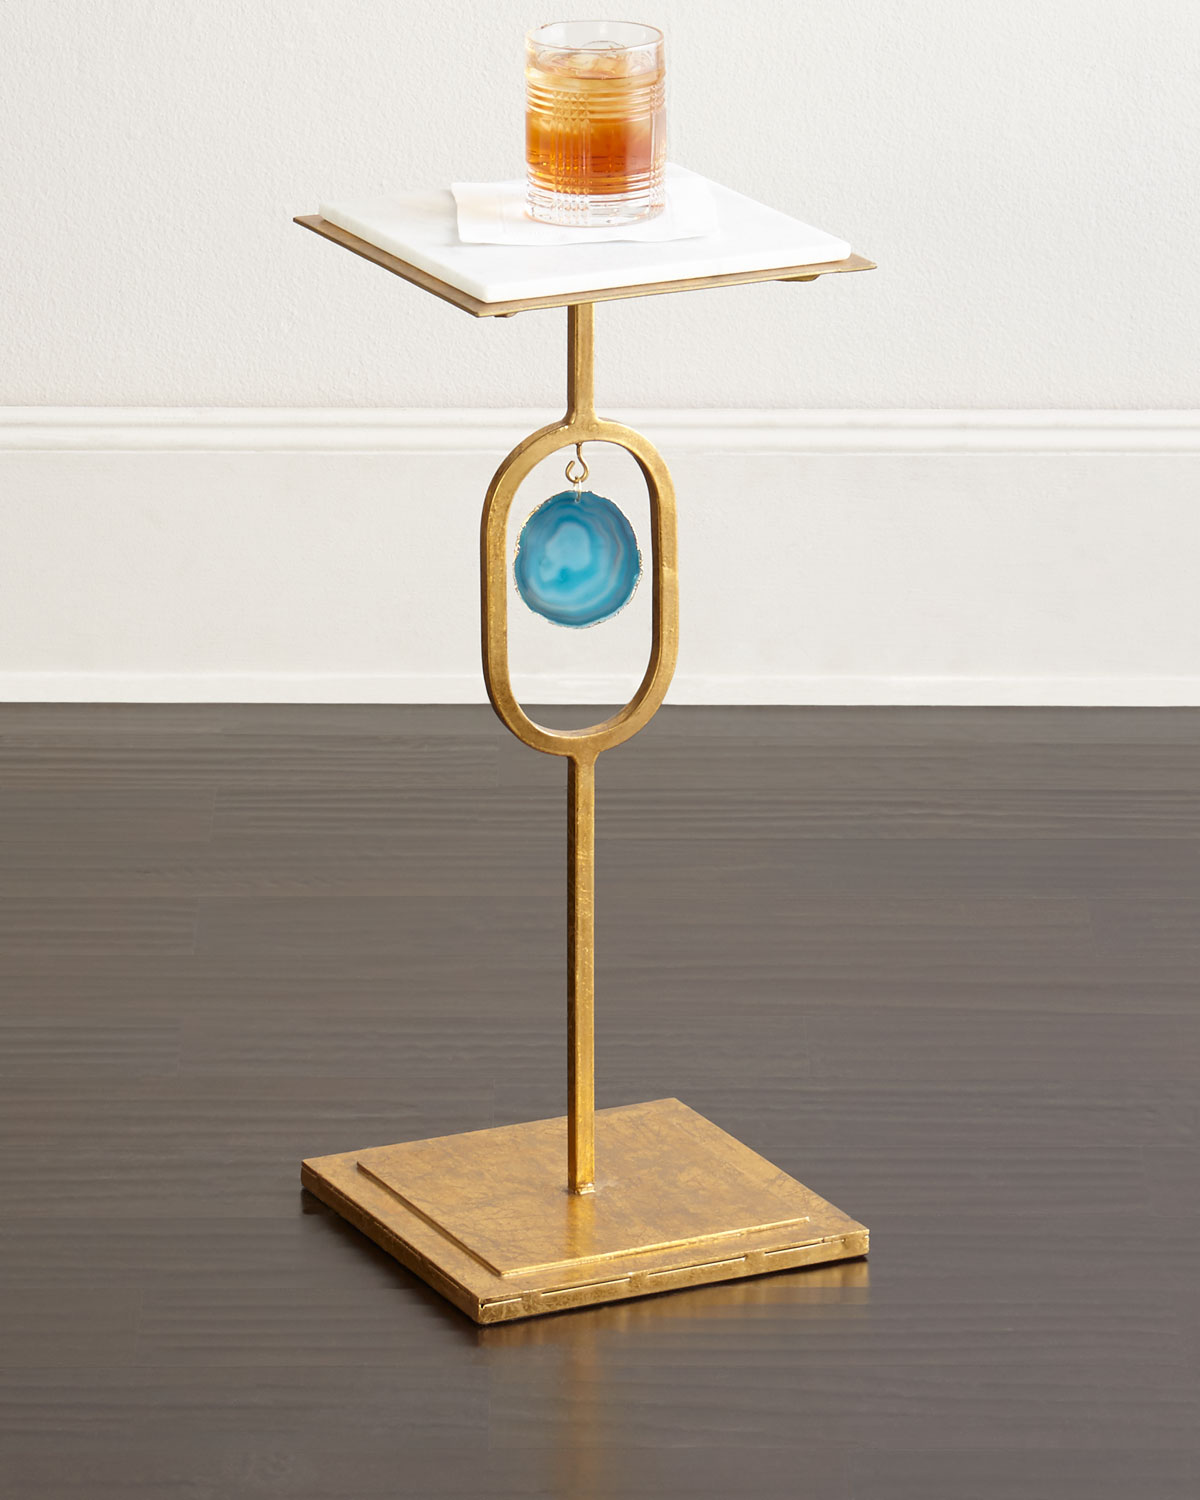 Welcoming White Kitchen Is Illuminated By Regina Andrew: Eve Teal Agate Side Table